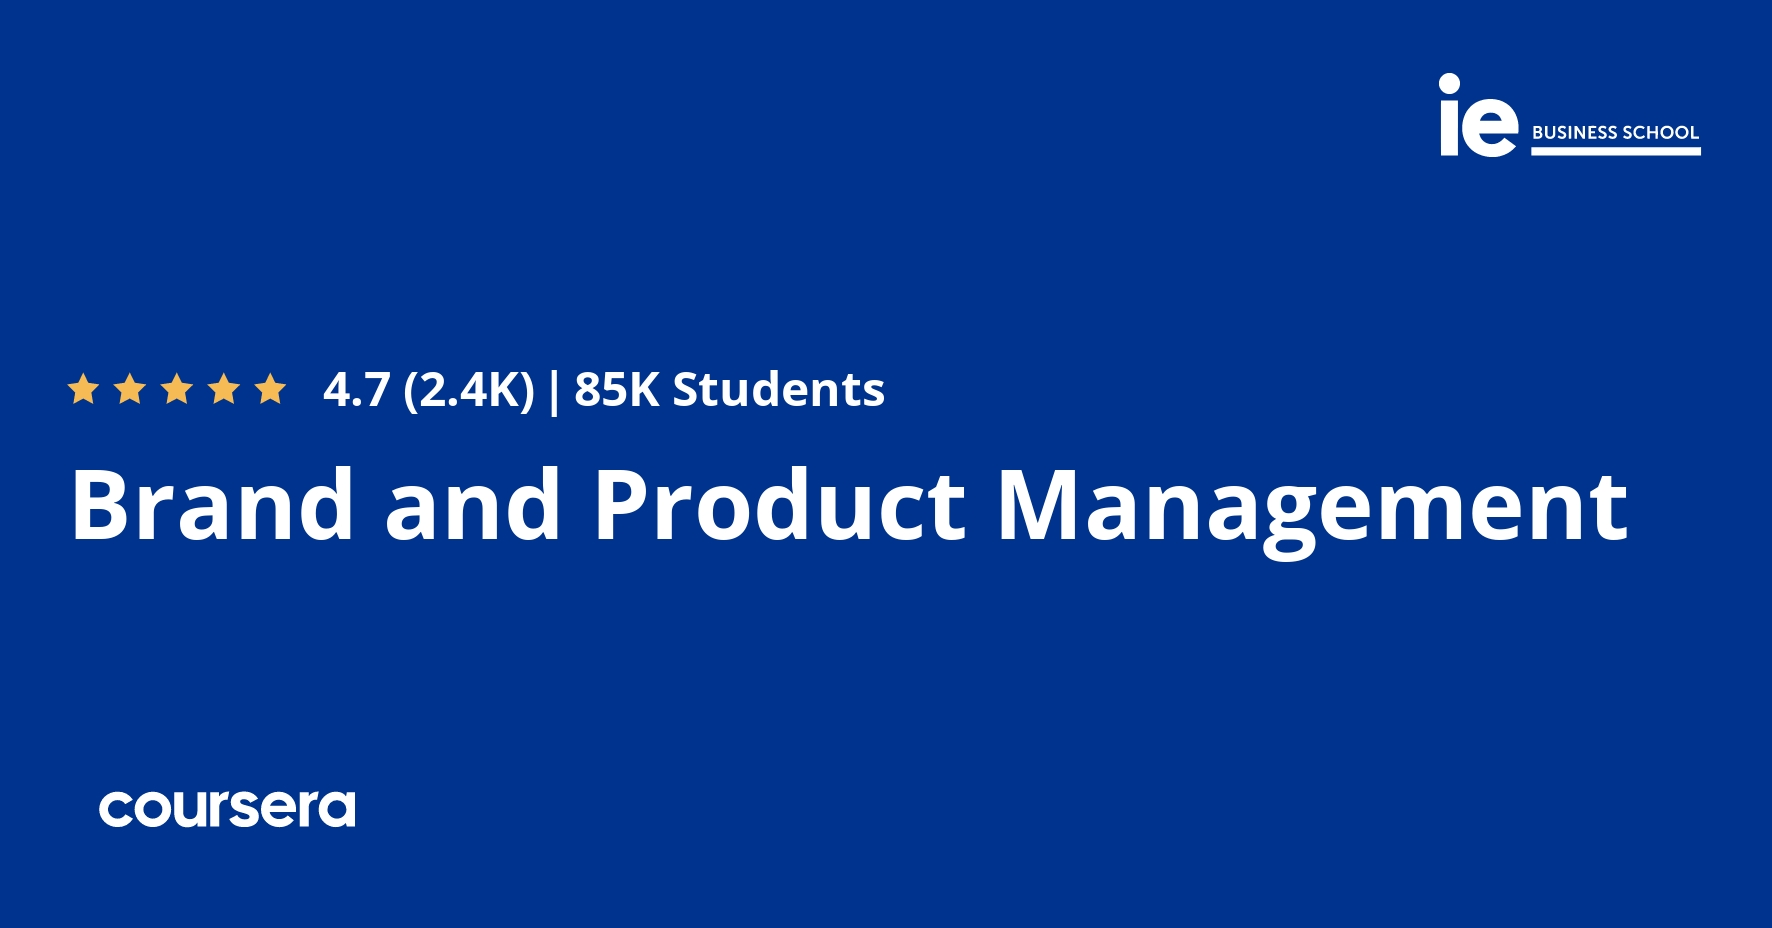 Brand and Product Management by Coursera